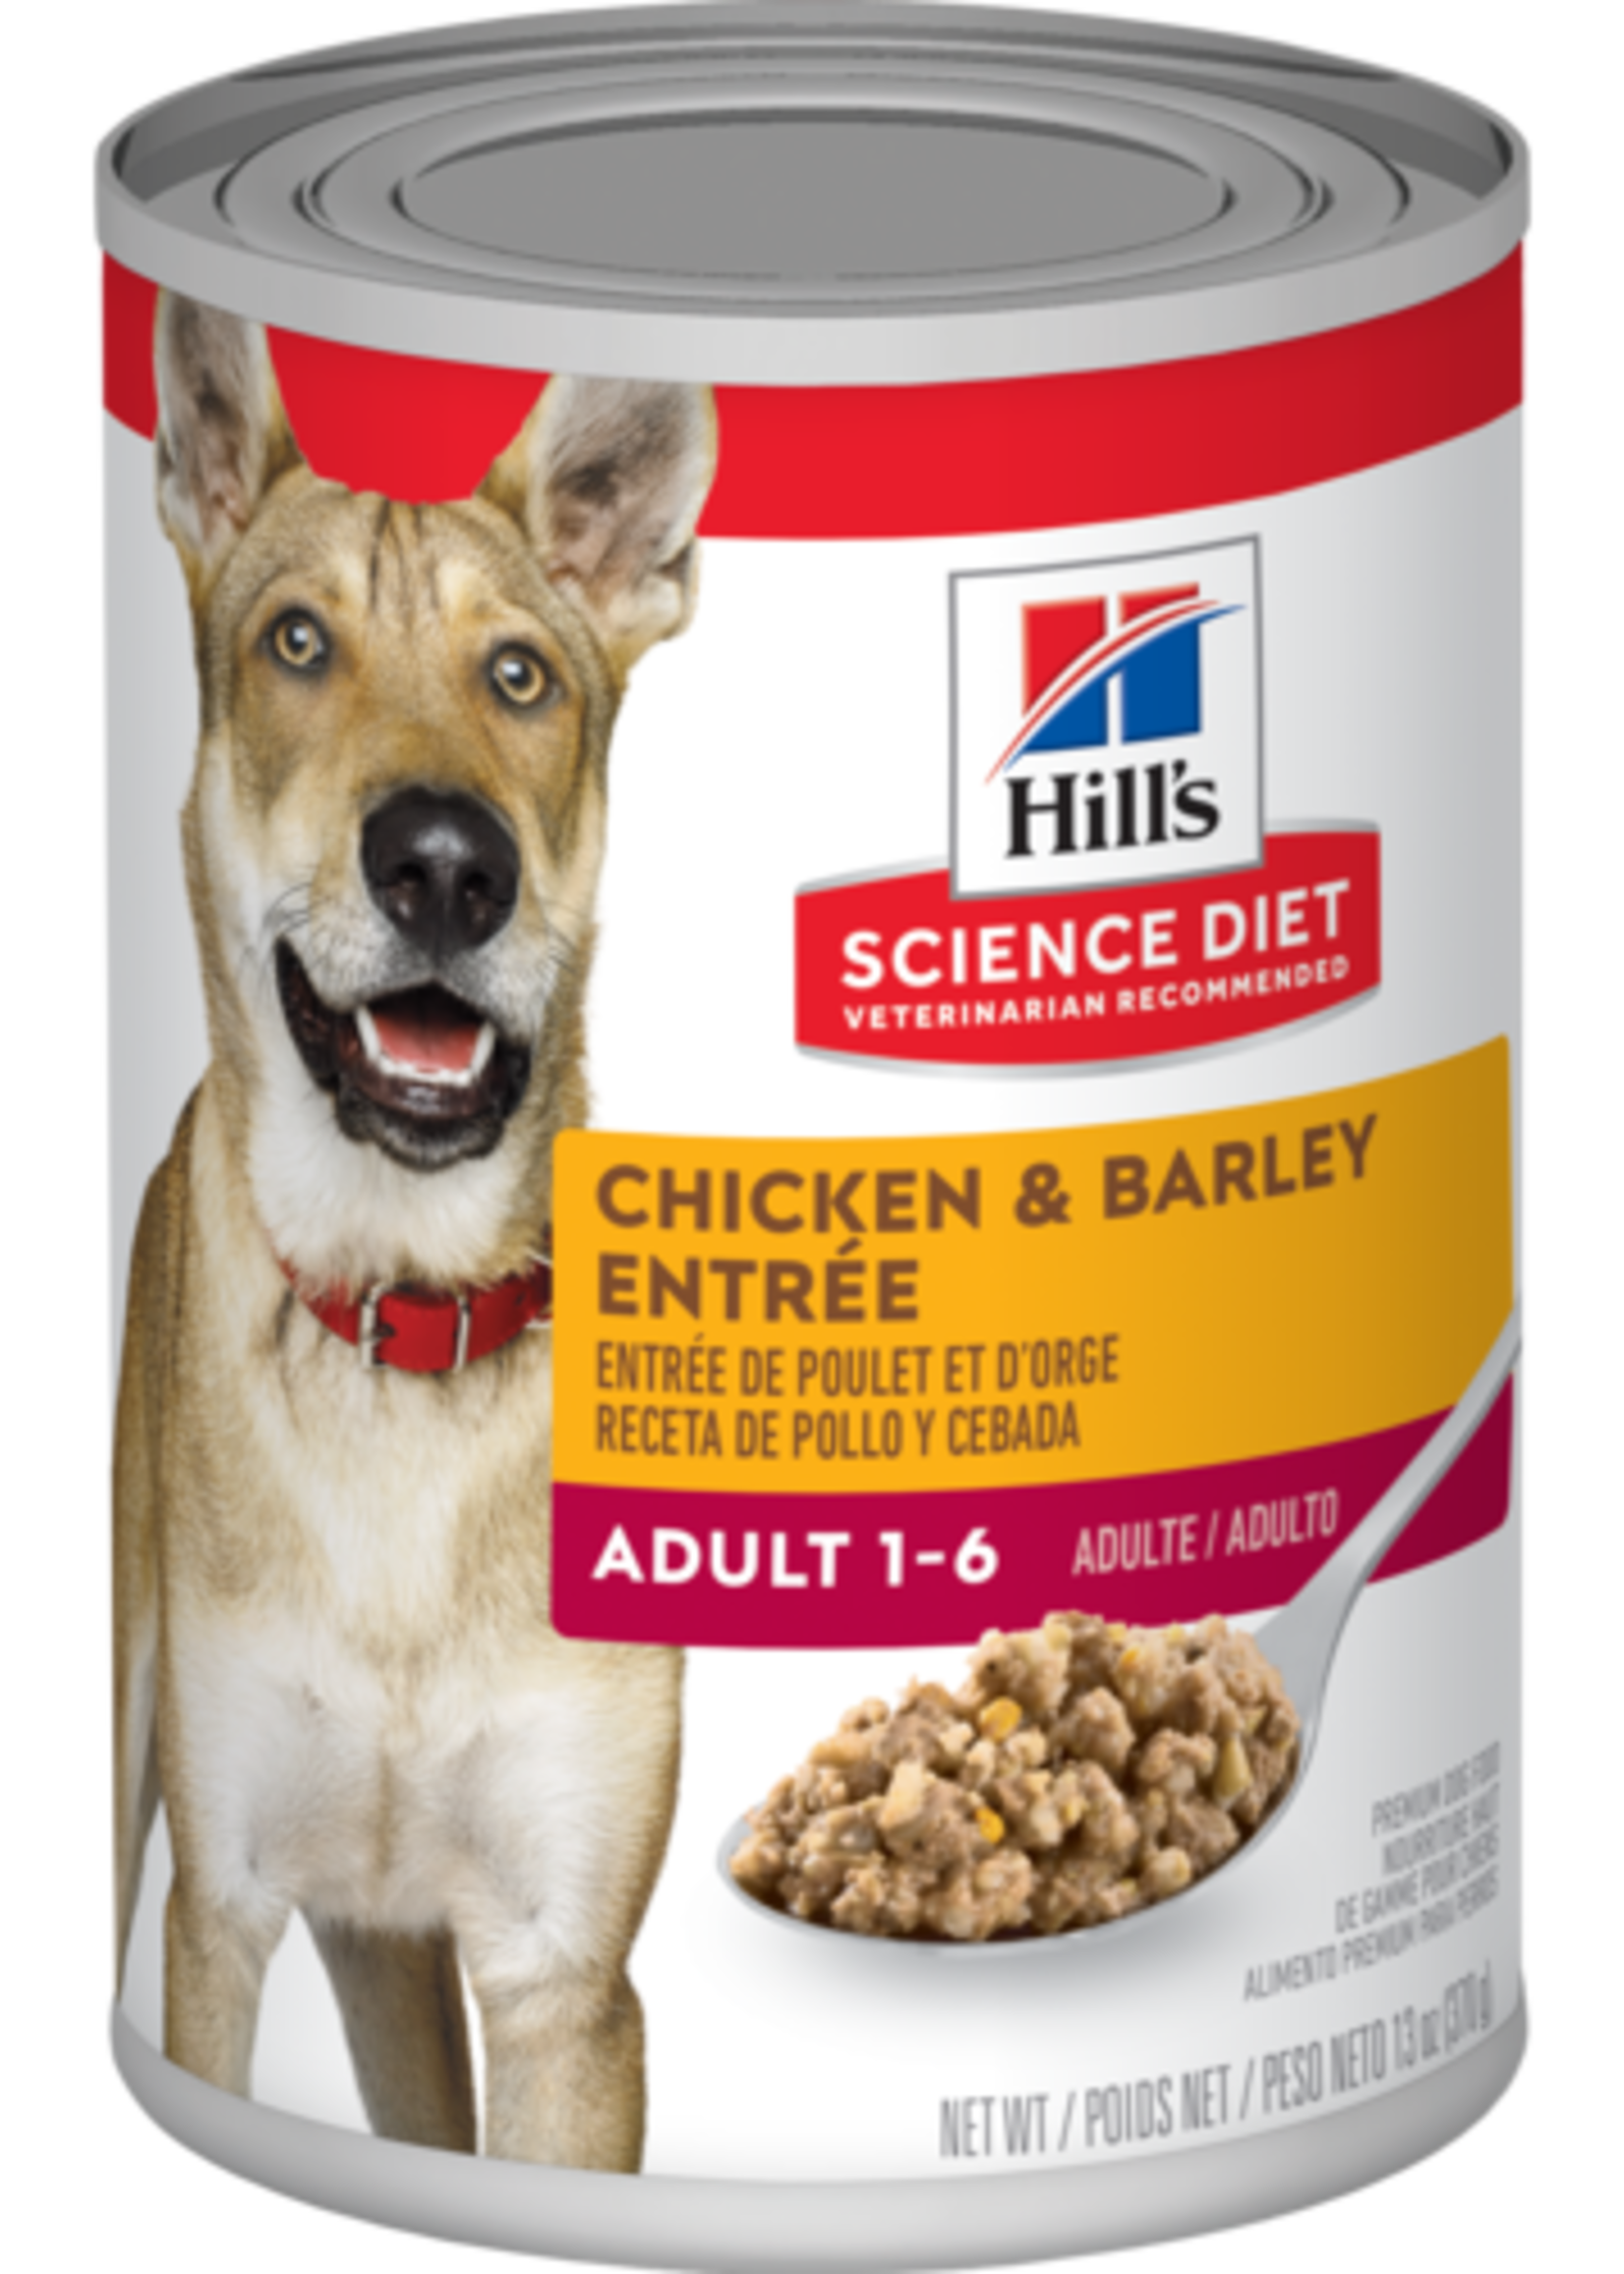 Hill's Science Diet Hill's Science Diet Canine Can Chicken & Barley Entree 370gm.